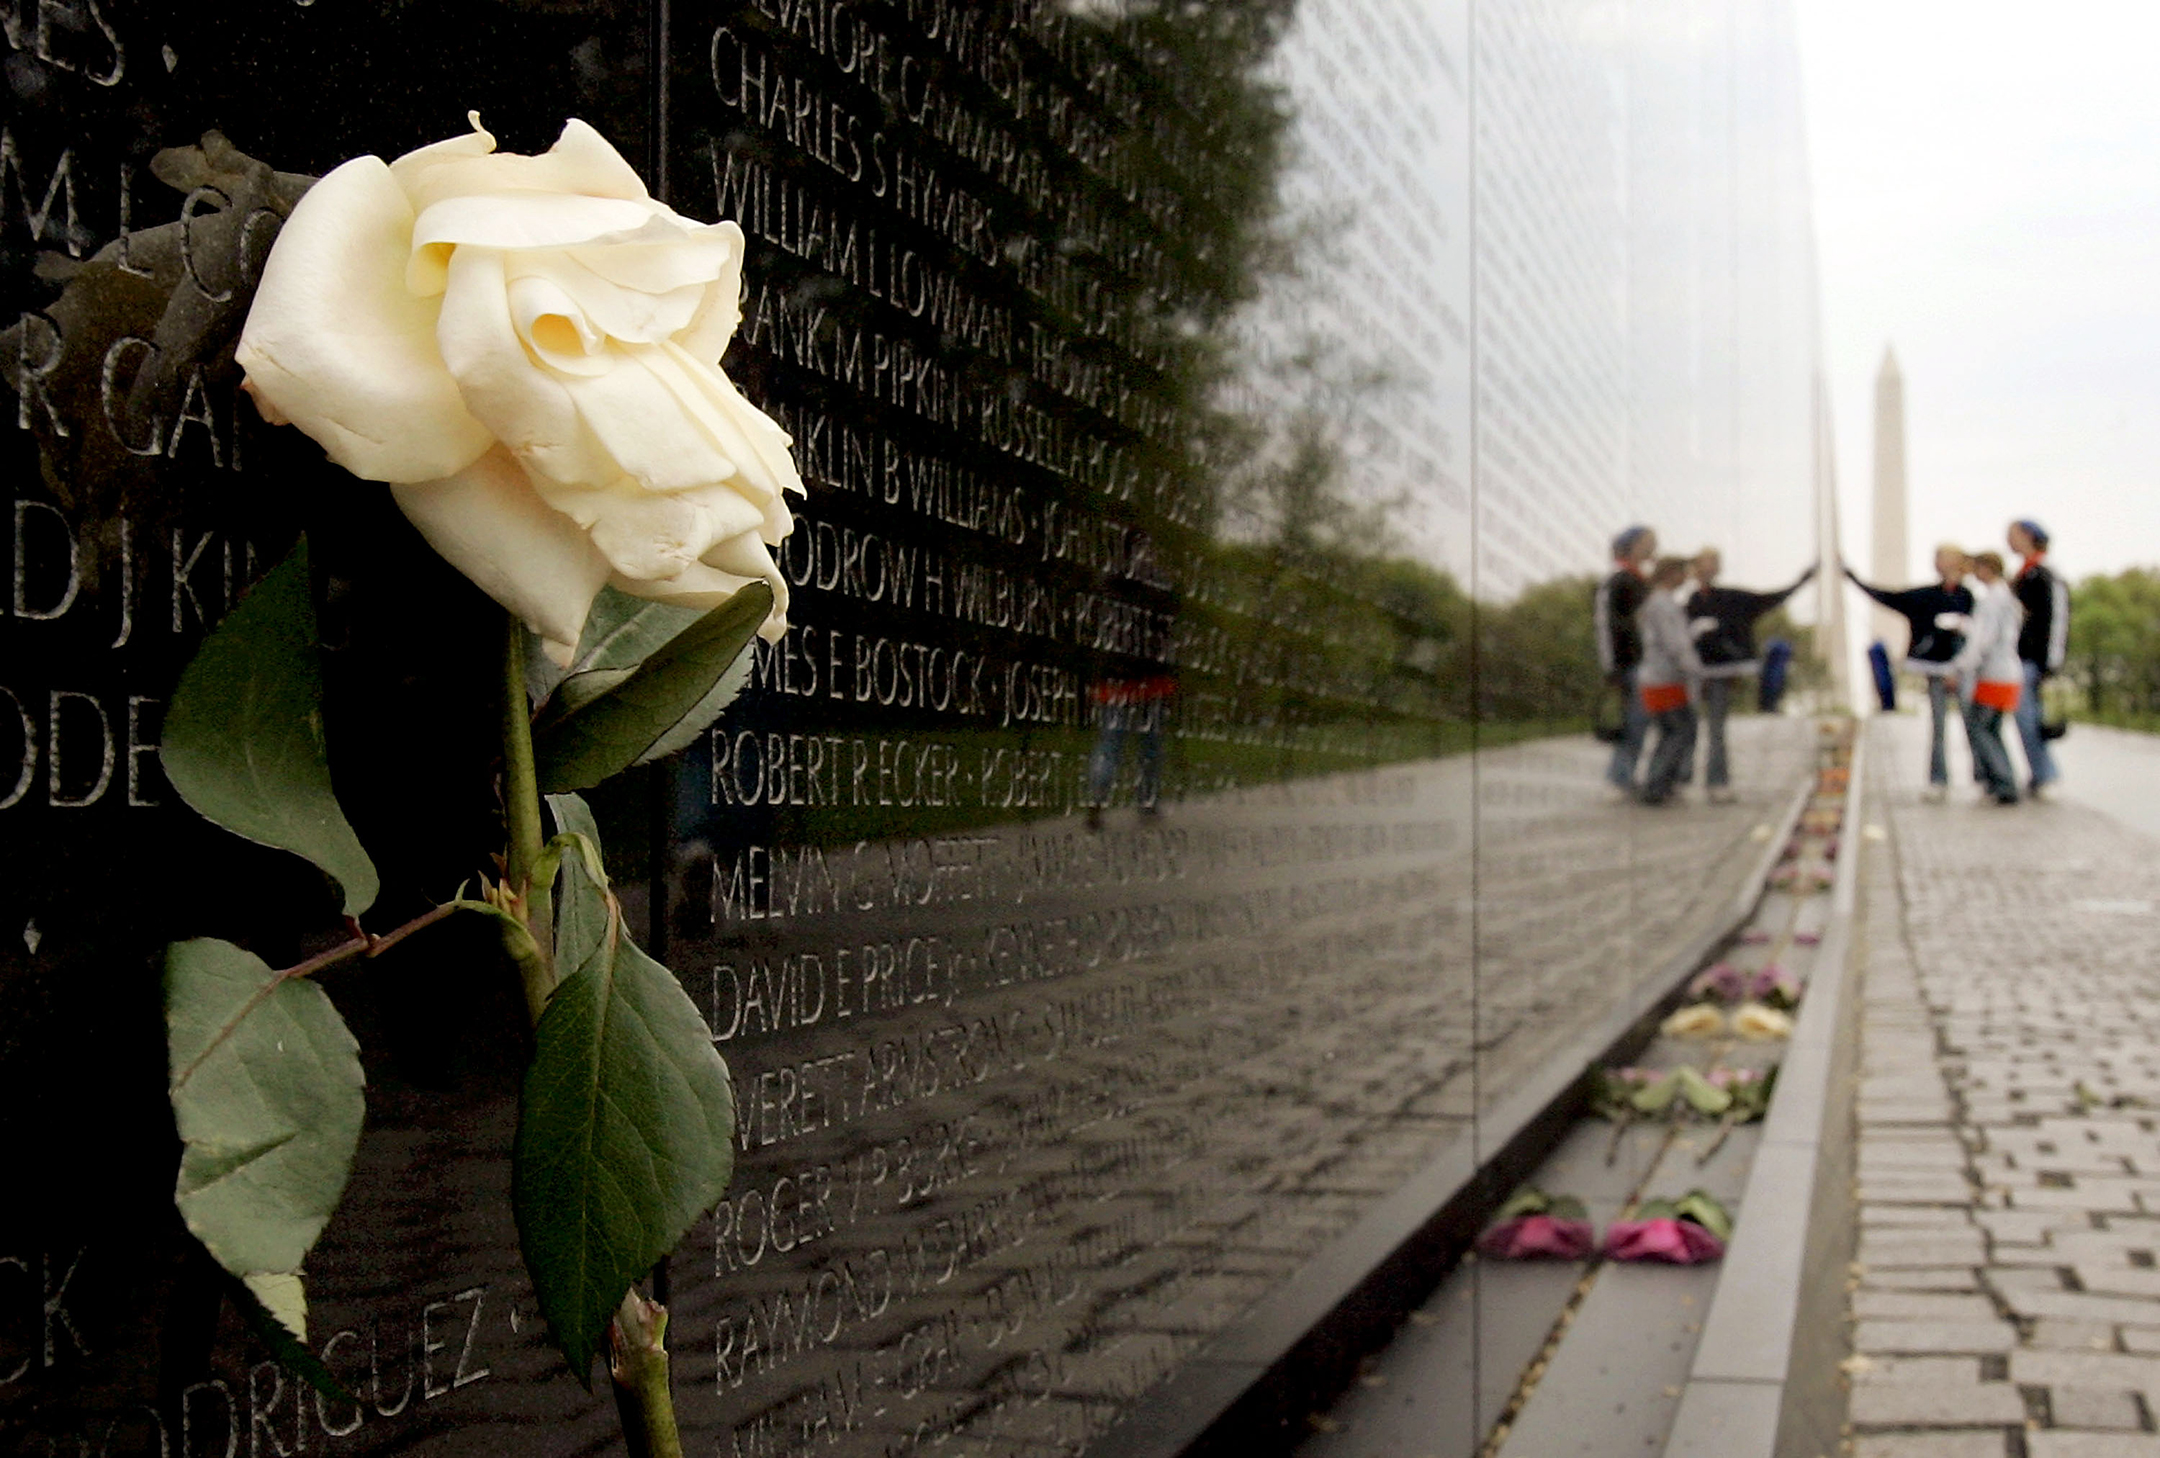 A wide-angle view of the Vietnam Veterans Memorial, with a white flower against the wall in the foreground, a group of students in the background, and the Washington monument behind them